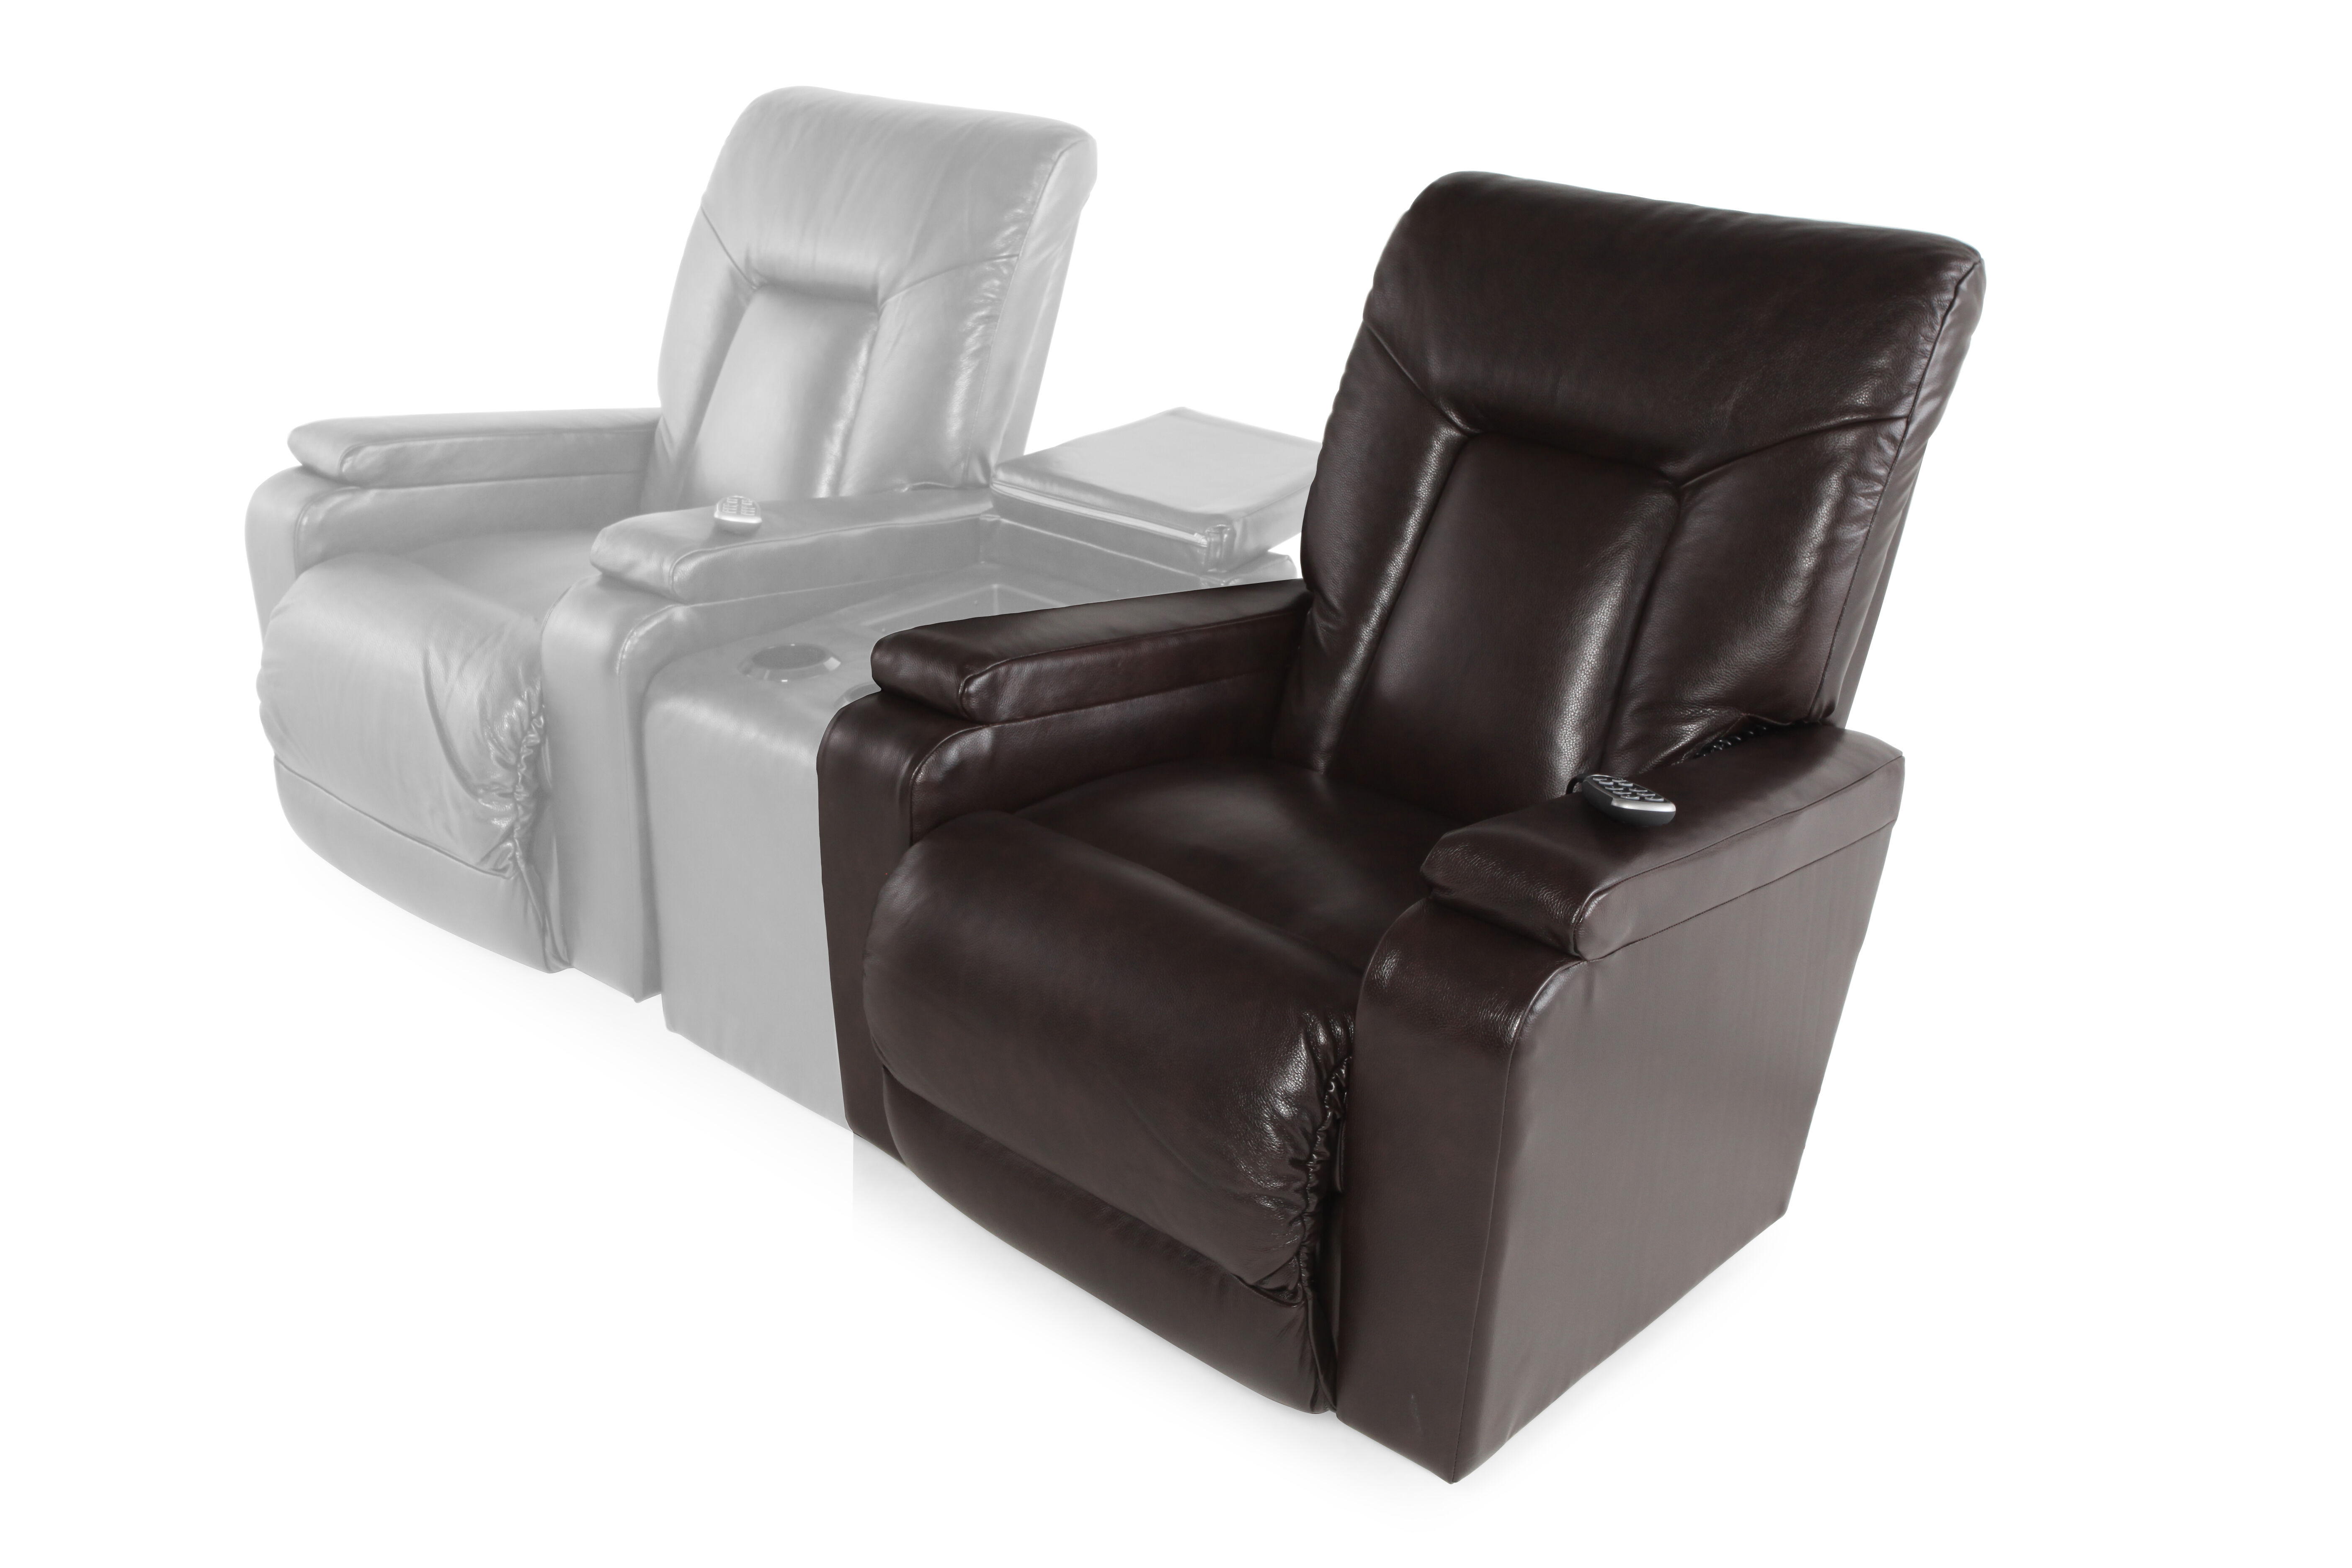 La-Z-Boy Intermission Power Recliner  sc 1 st  Mathis Brothers & La-Z-Boy Intermission Power Recliner | Mathis Brothers Furniture islam-shia.org